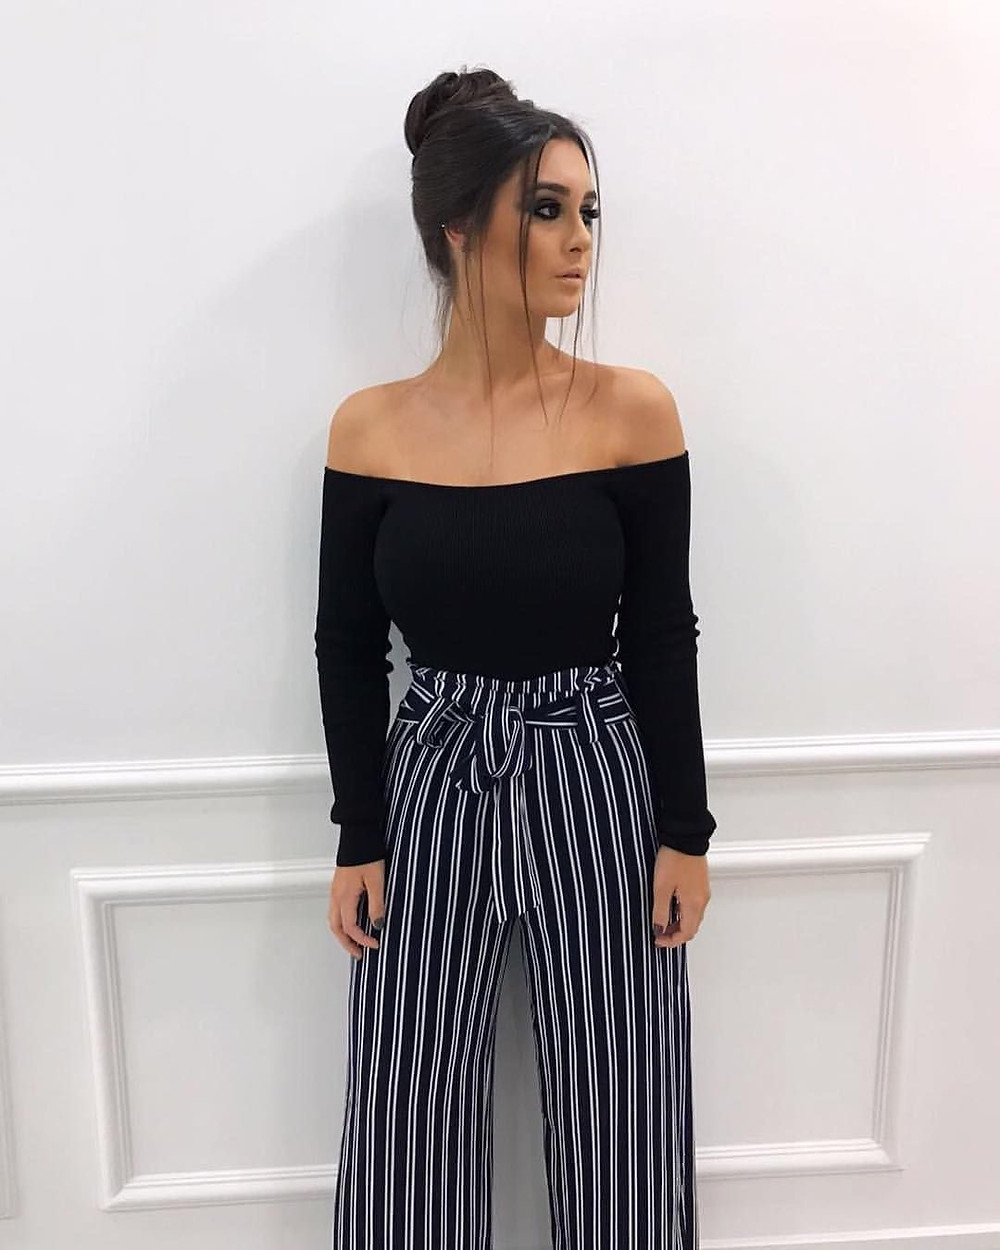 womens fashion, womens striped pants, womens striped trousers, holiday trousers, holiday pants, must have for summer holidays, must have vacation items, fashion styling, fashion tips